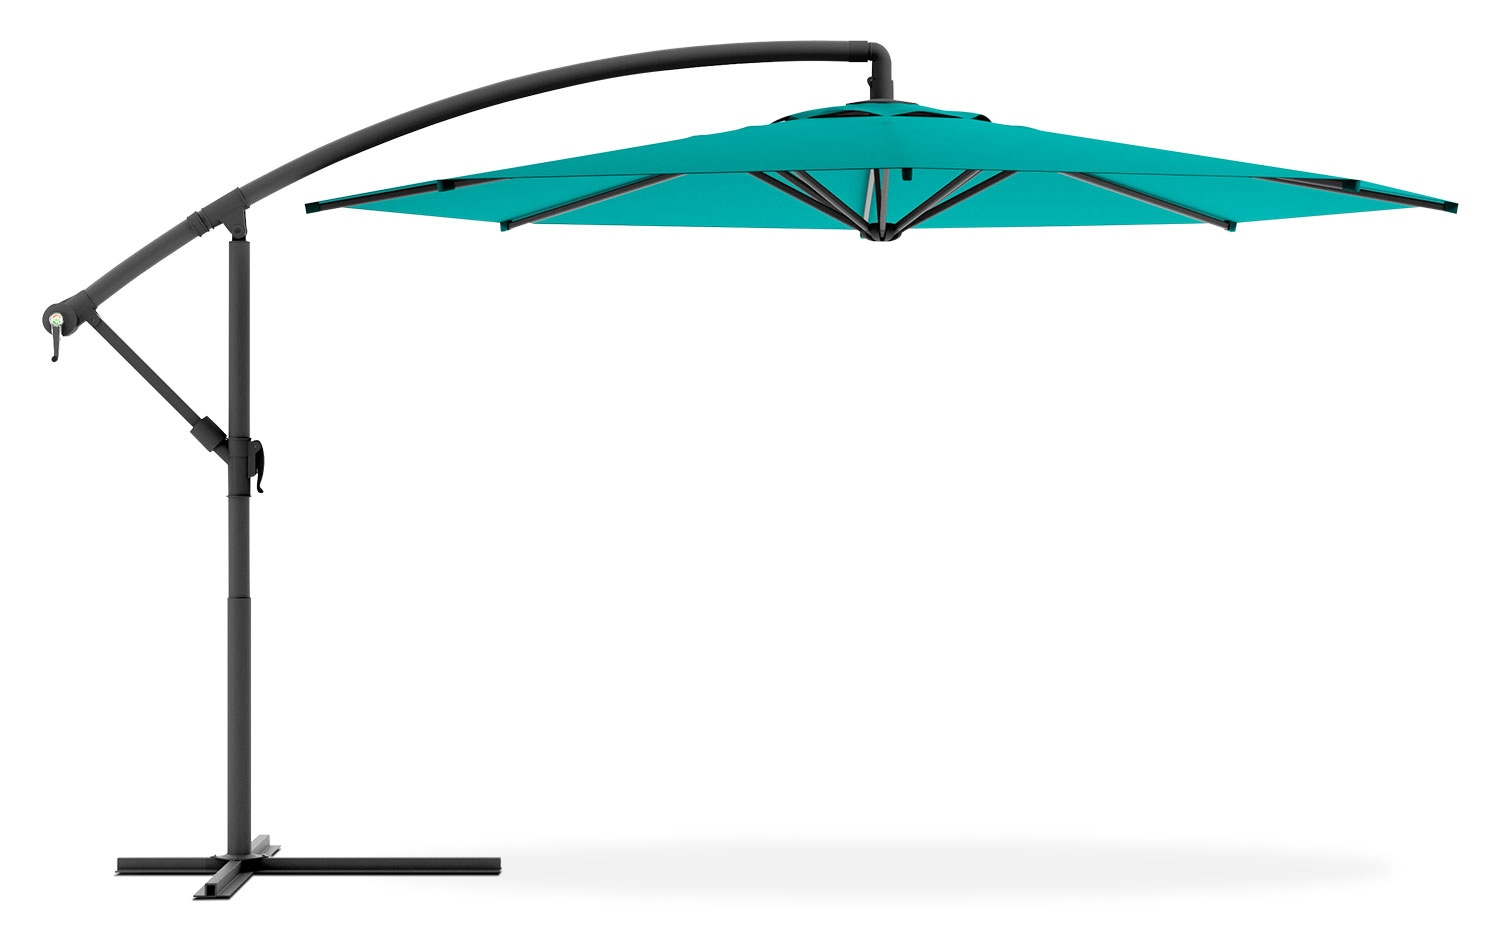 Cantilevered Patio Umbrella – Turquoise Blue